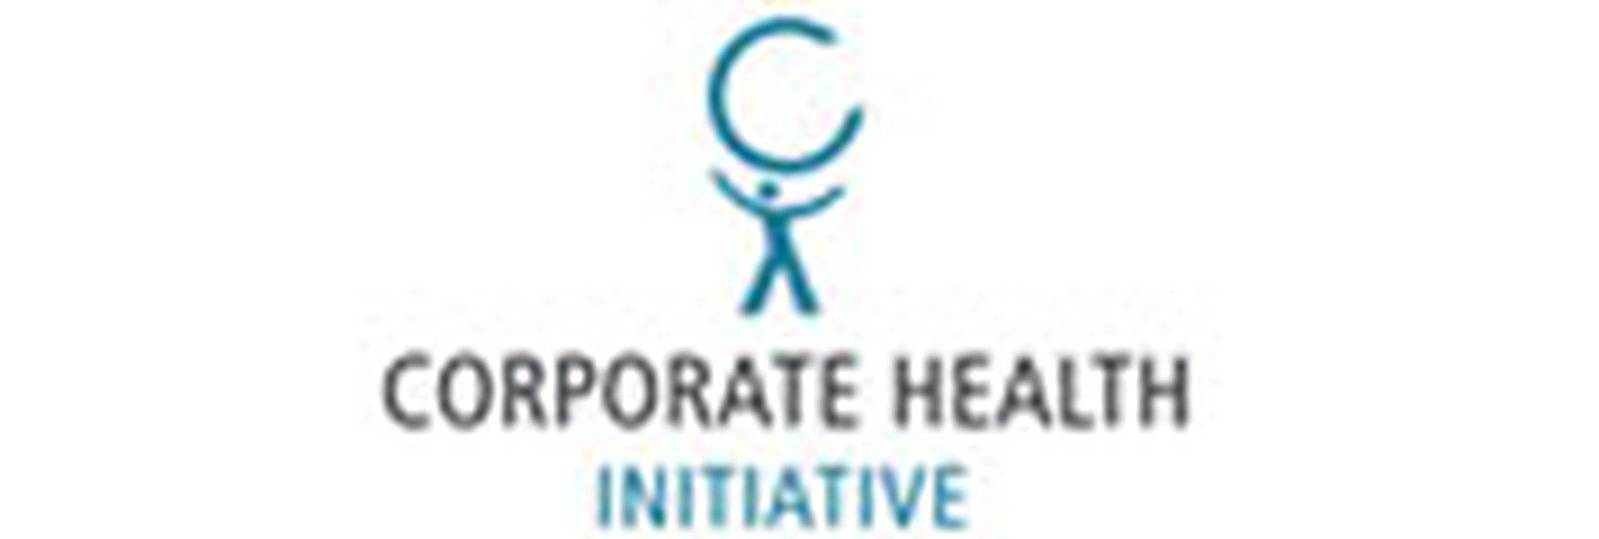 Link and logo of Partner Corporate Health Initiative